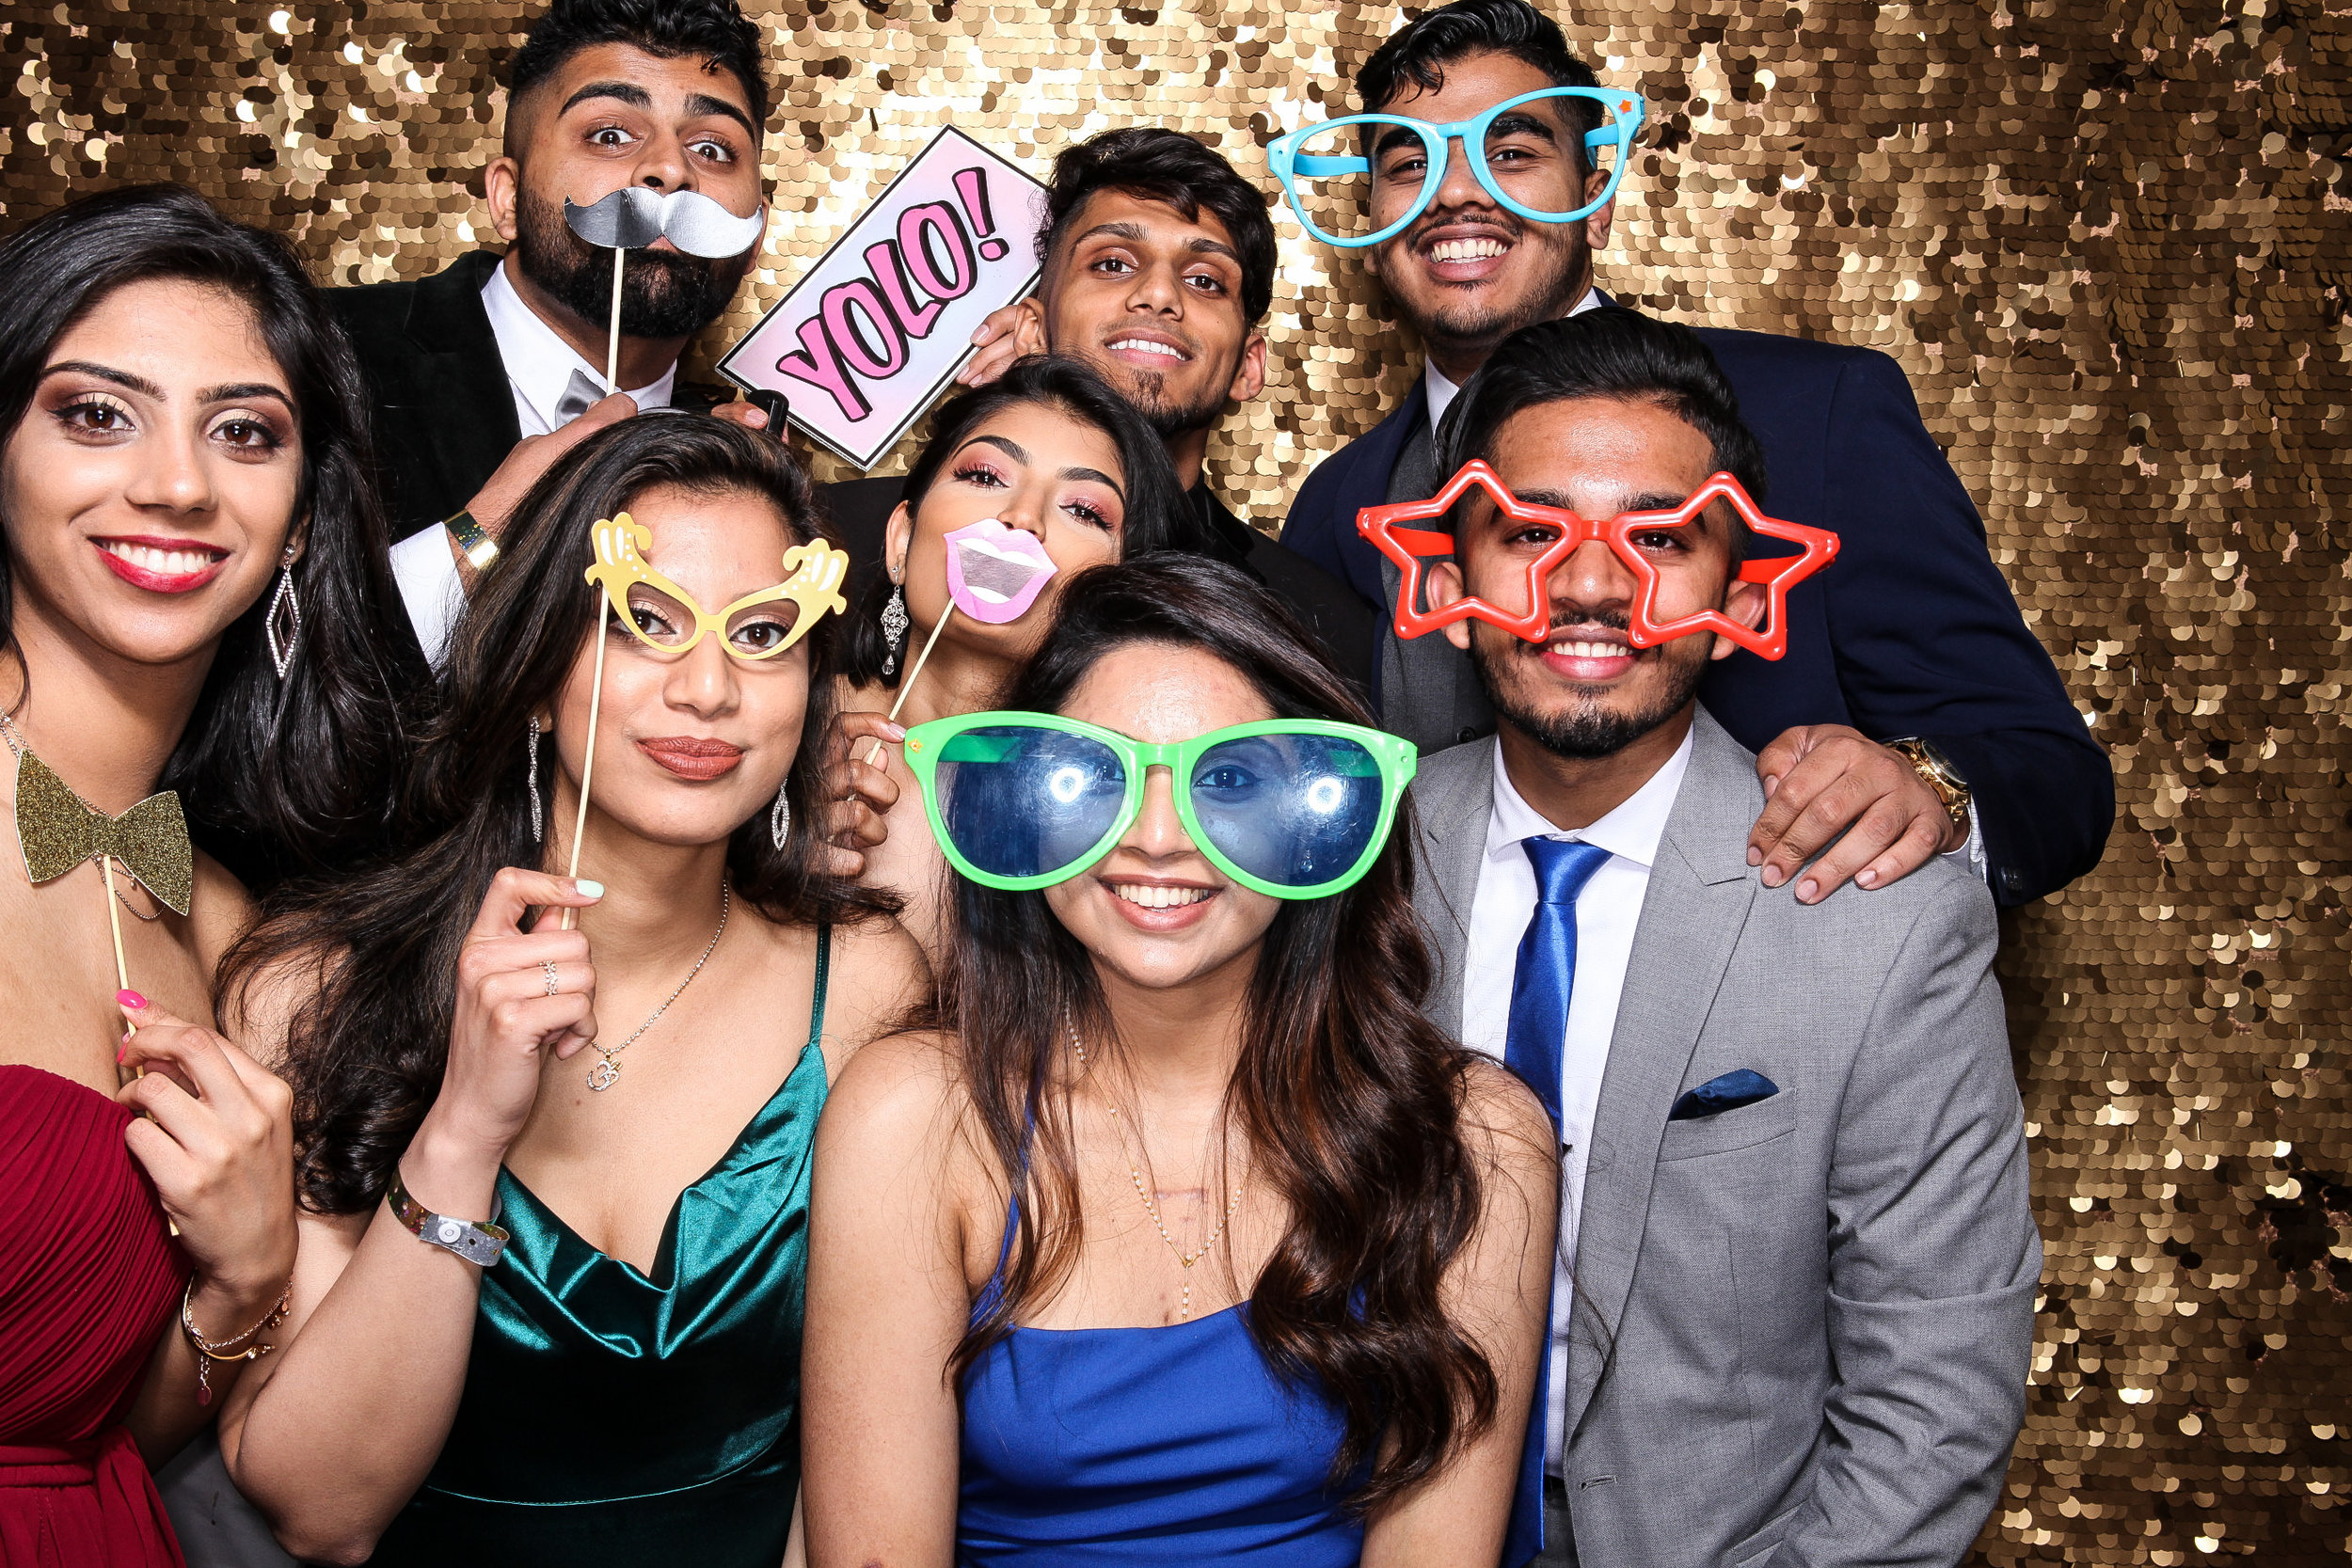 20190503_Adelphi_Senior_Formal-259.jpg